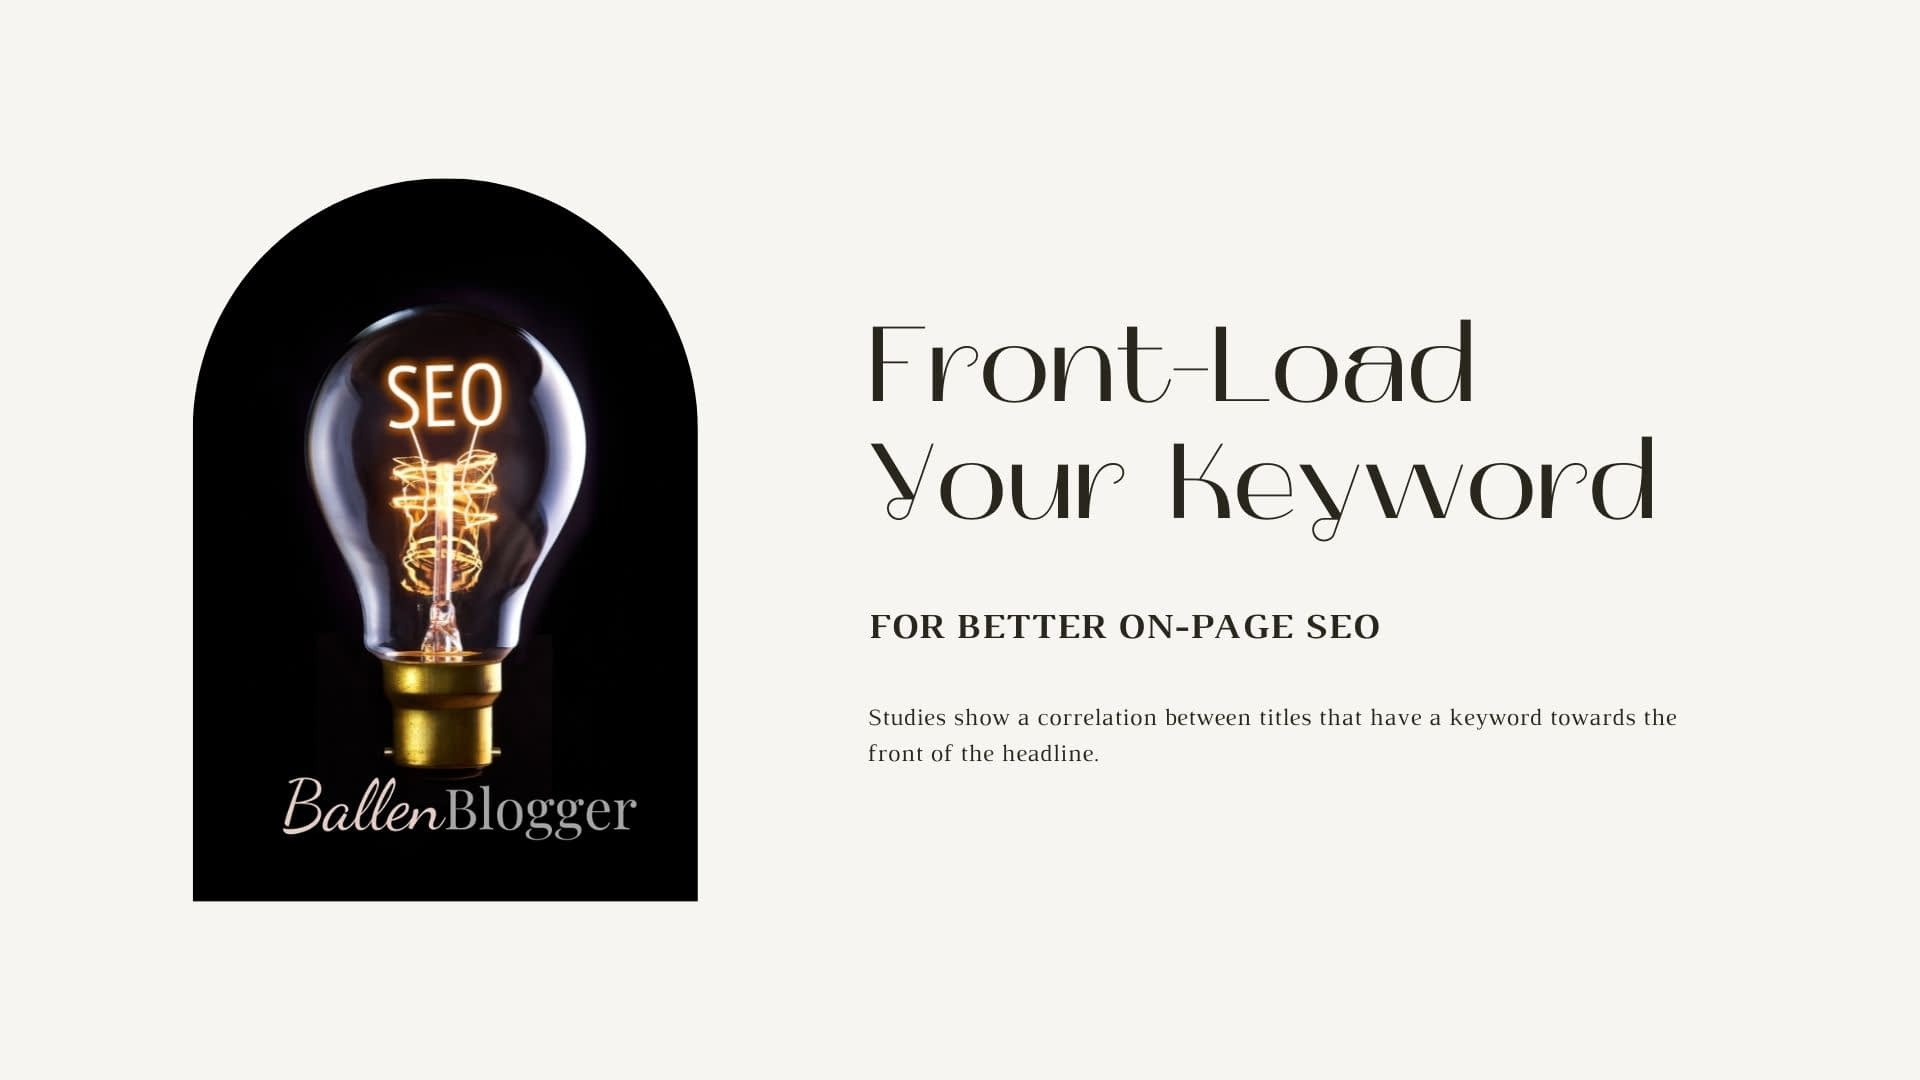 SEO bloggers will often agree that keyword positioning in your headline can make a difference in ranking.